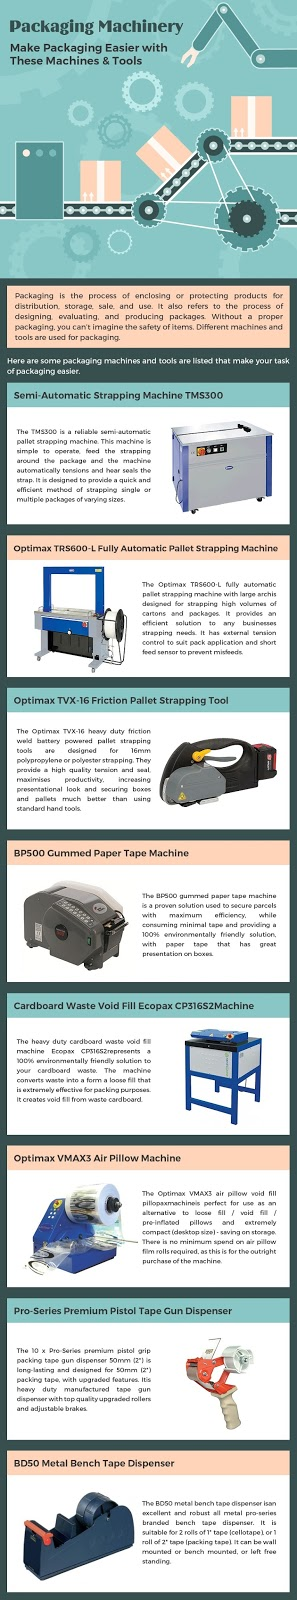 packaging machinery infographic